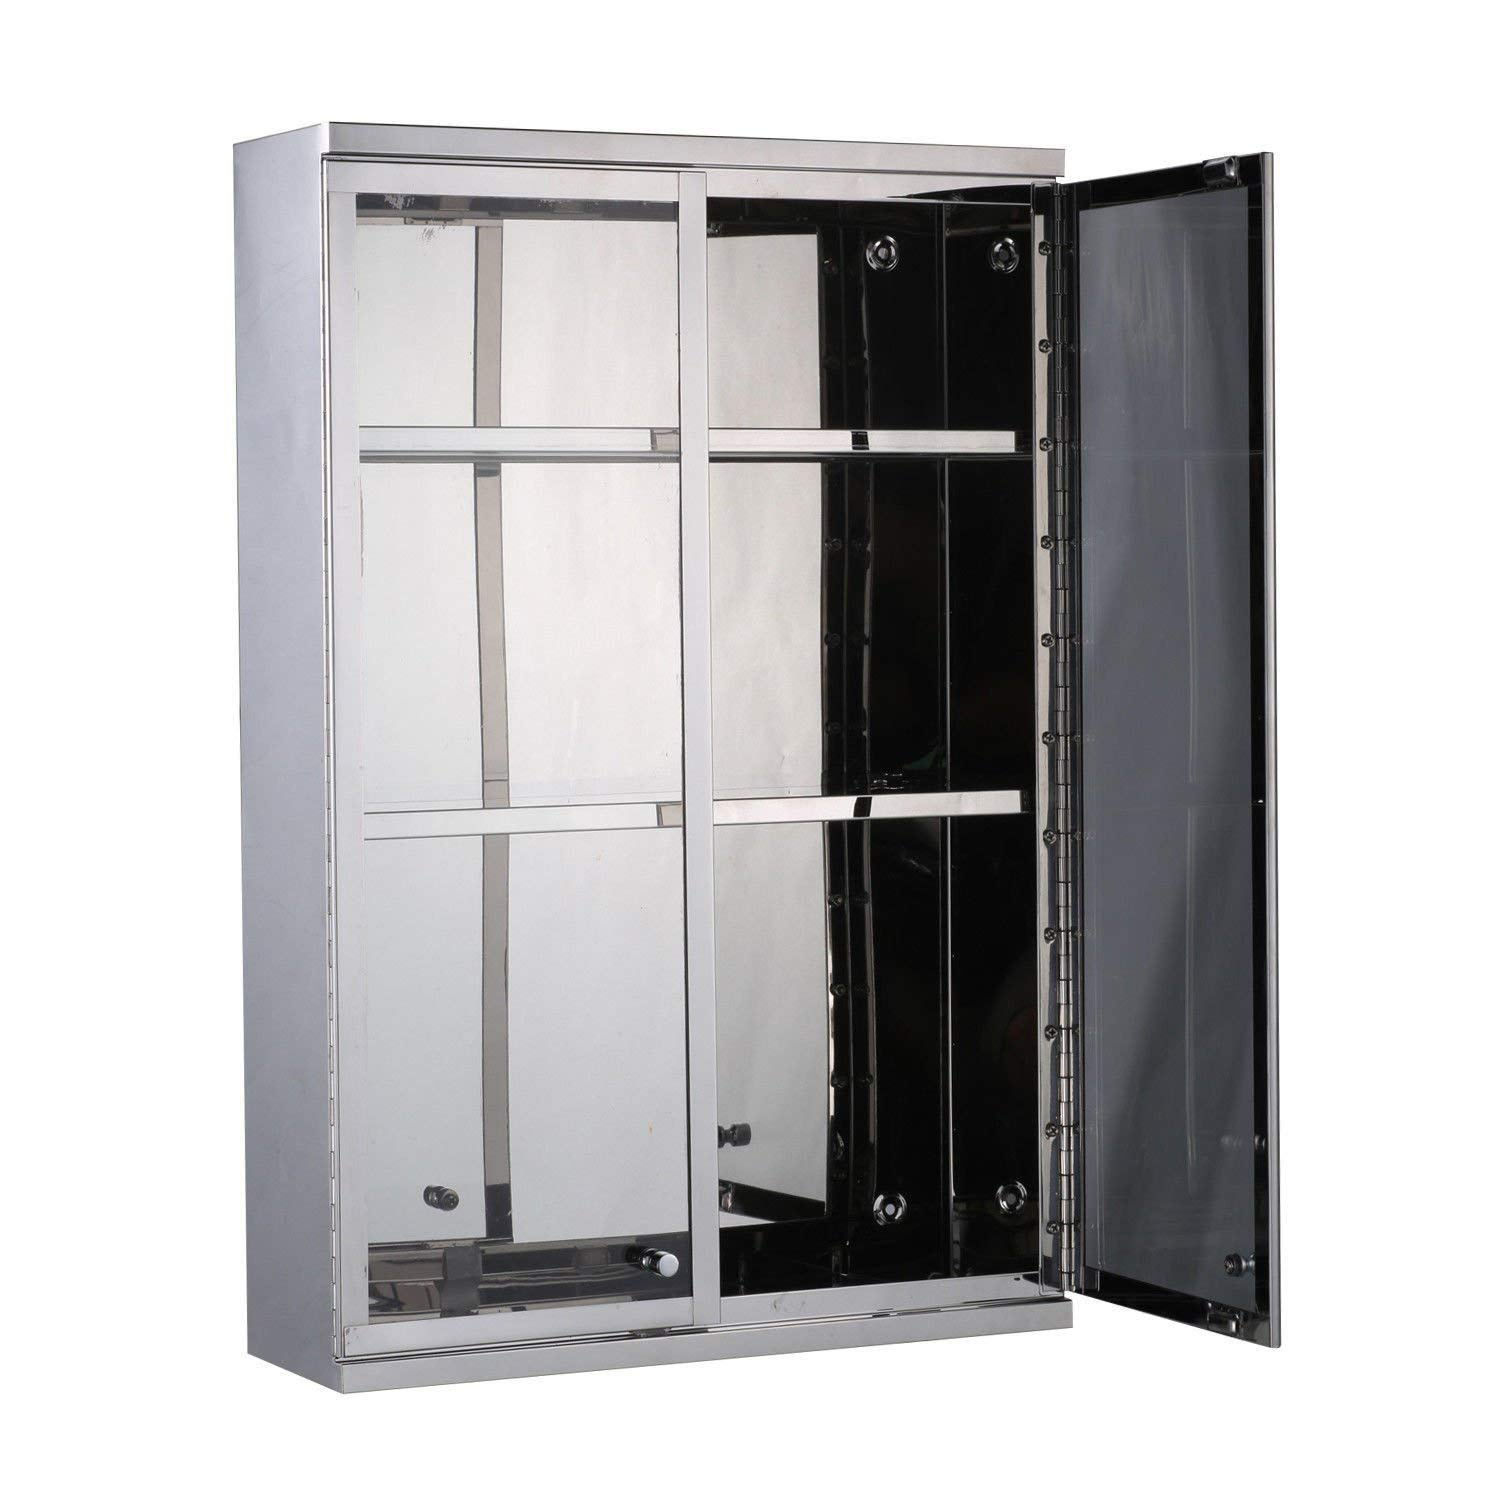 New Silver, Modern Wall Mount Storage Cabinet Bathroom Stainless Steel w/Shelves